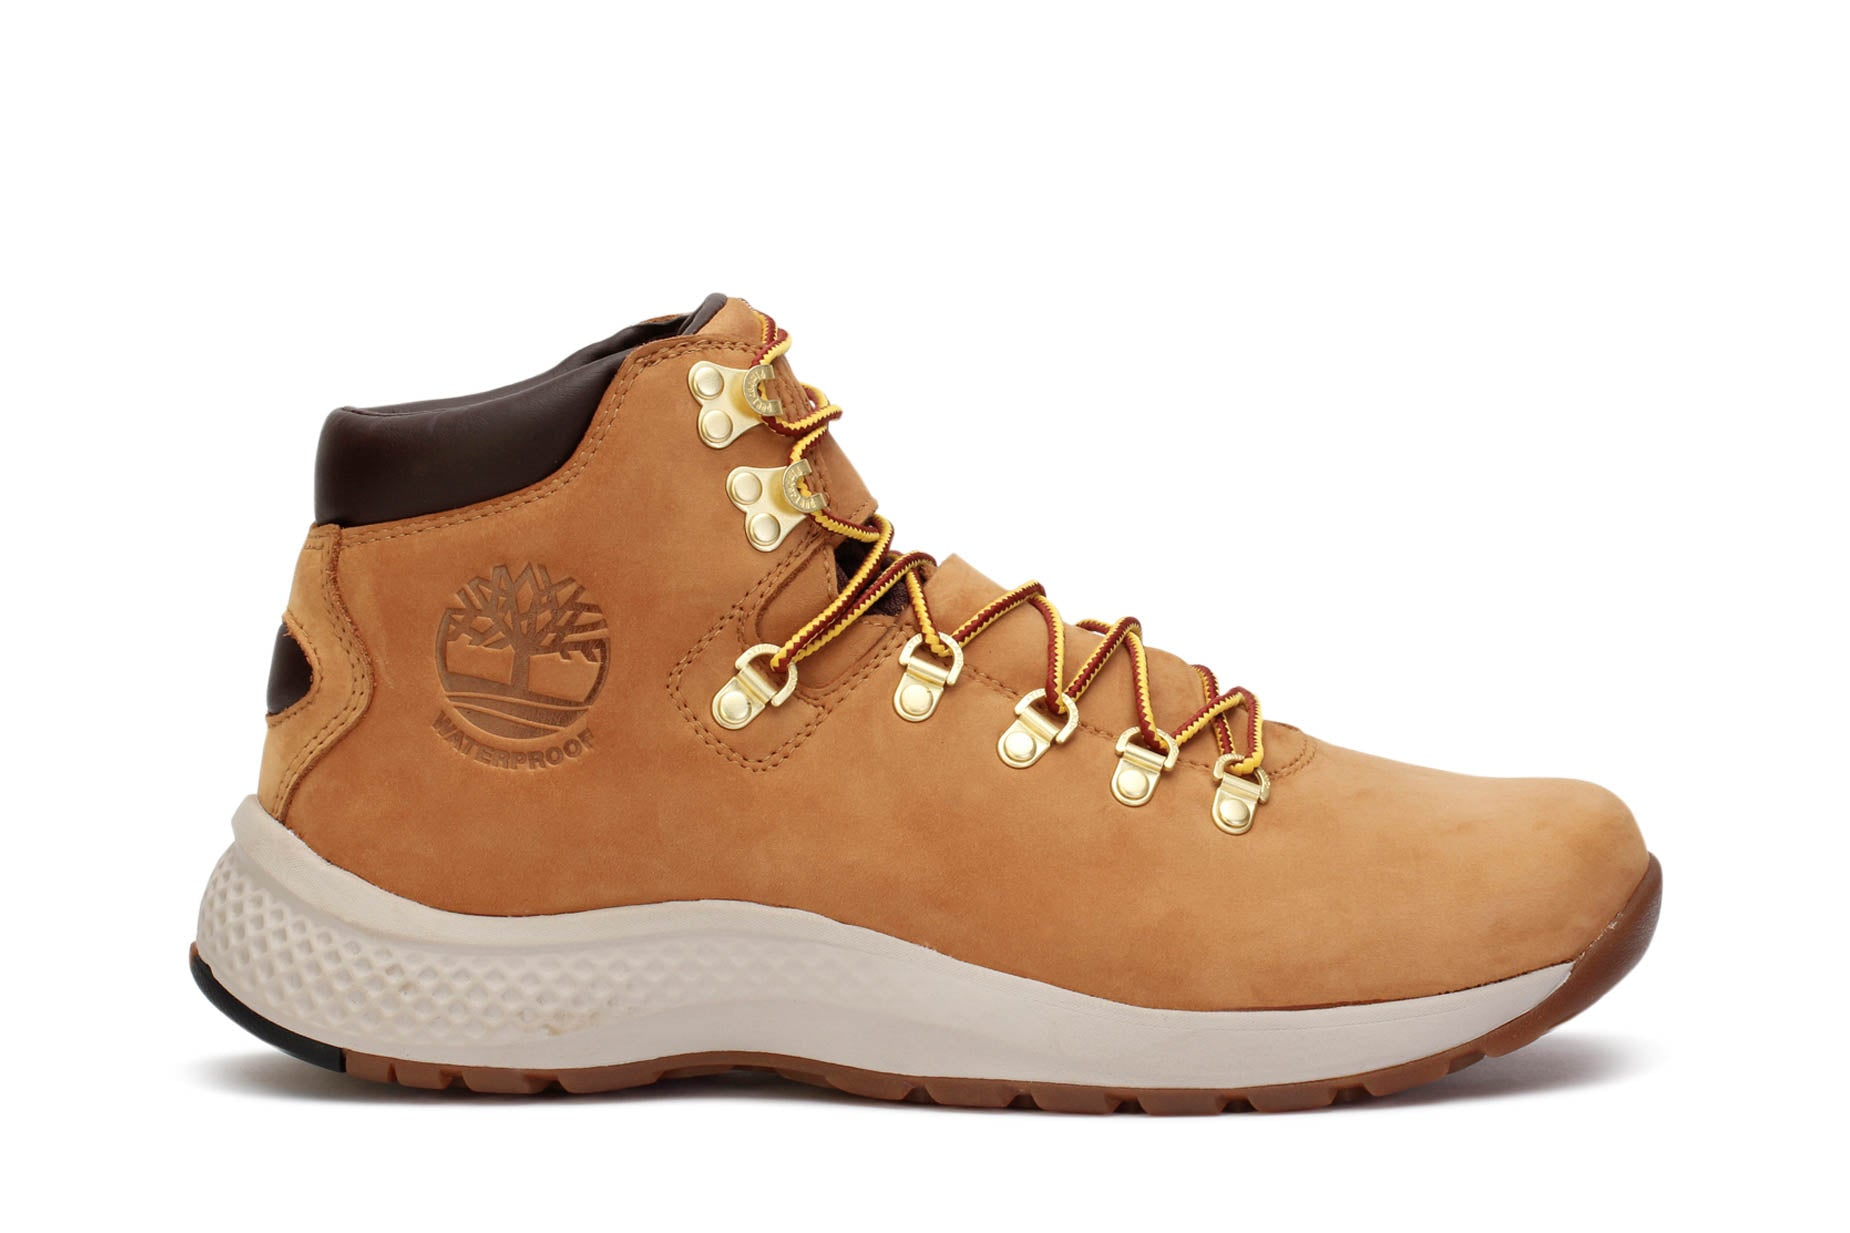 timberland-mens-1978-flyroam-trail-hiker-waterproof-boots-wheat-nubuck-a1rlz-main